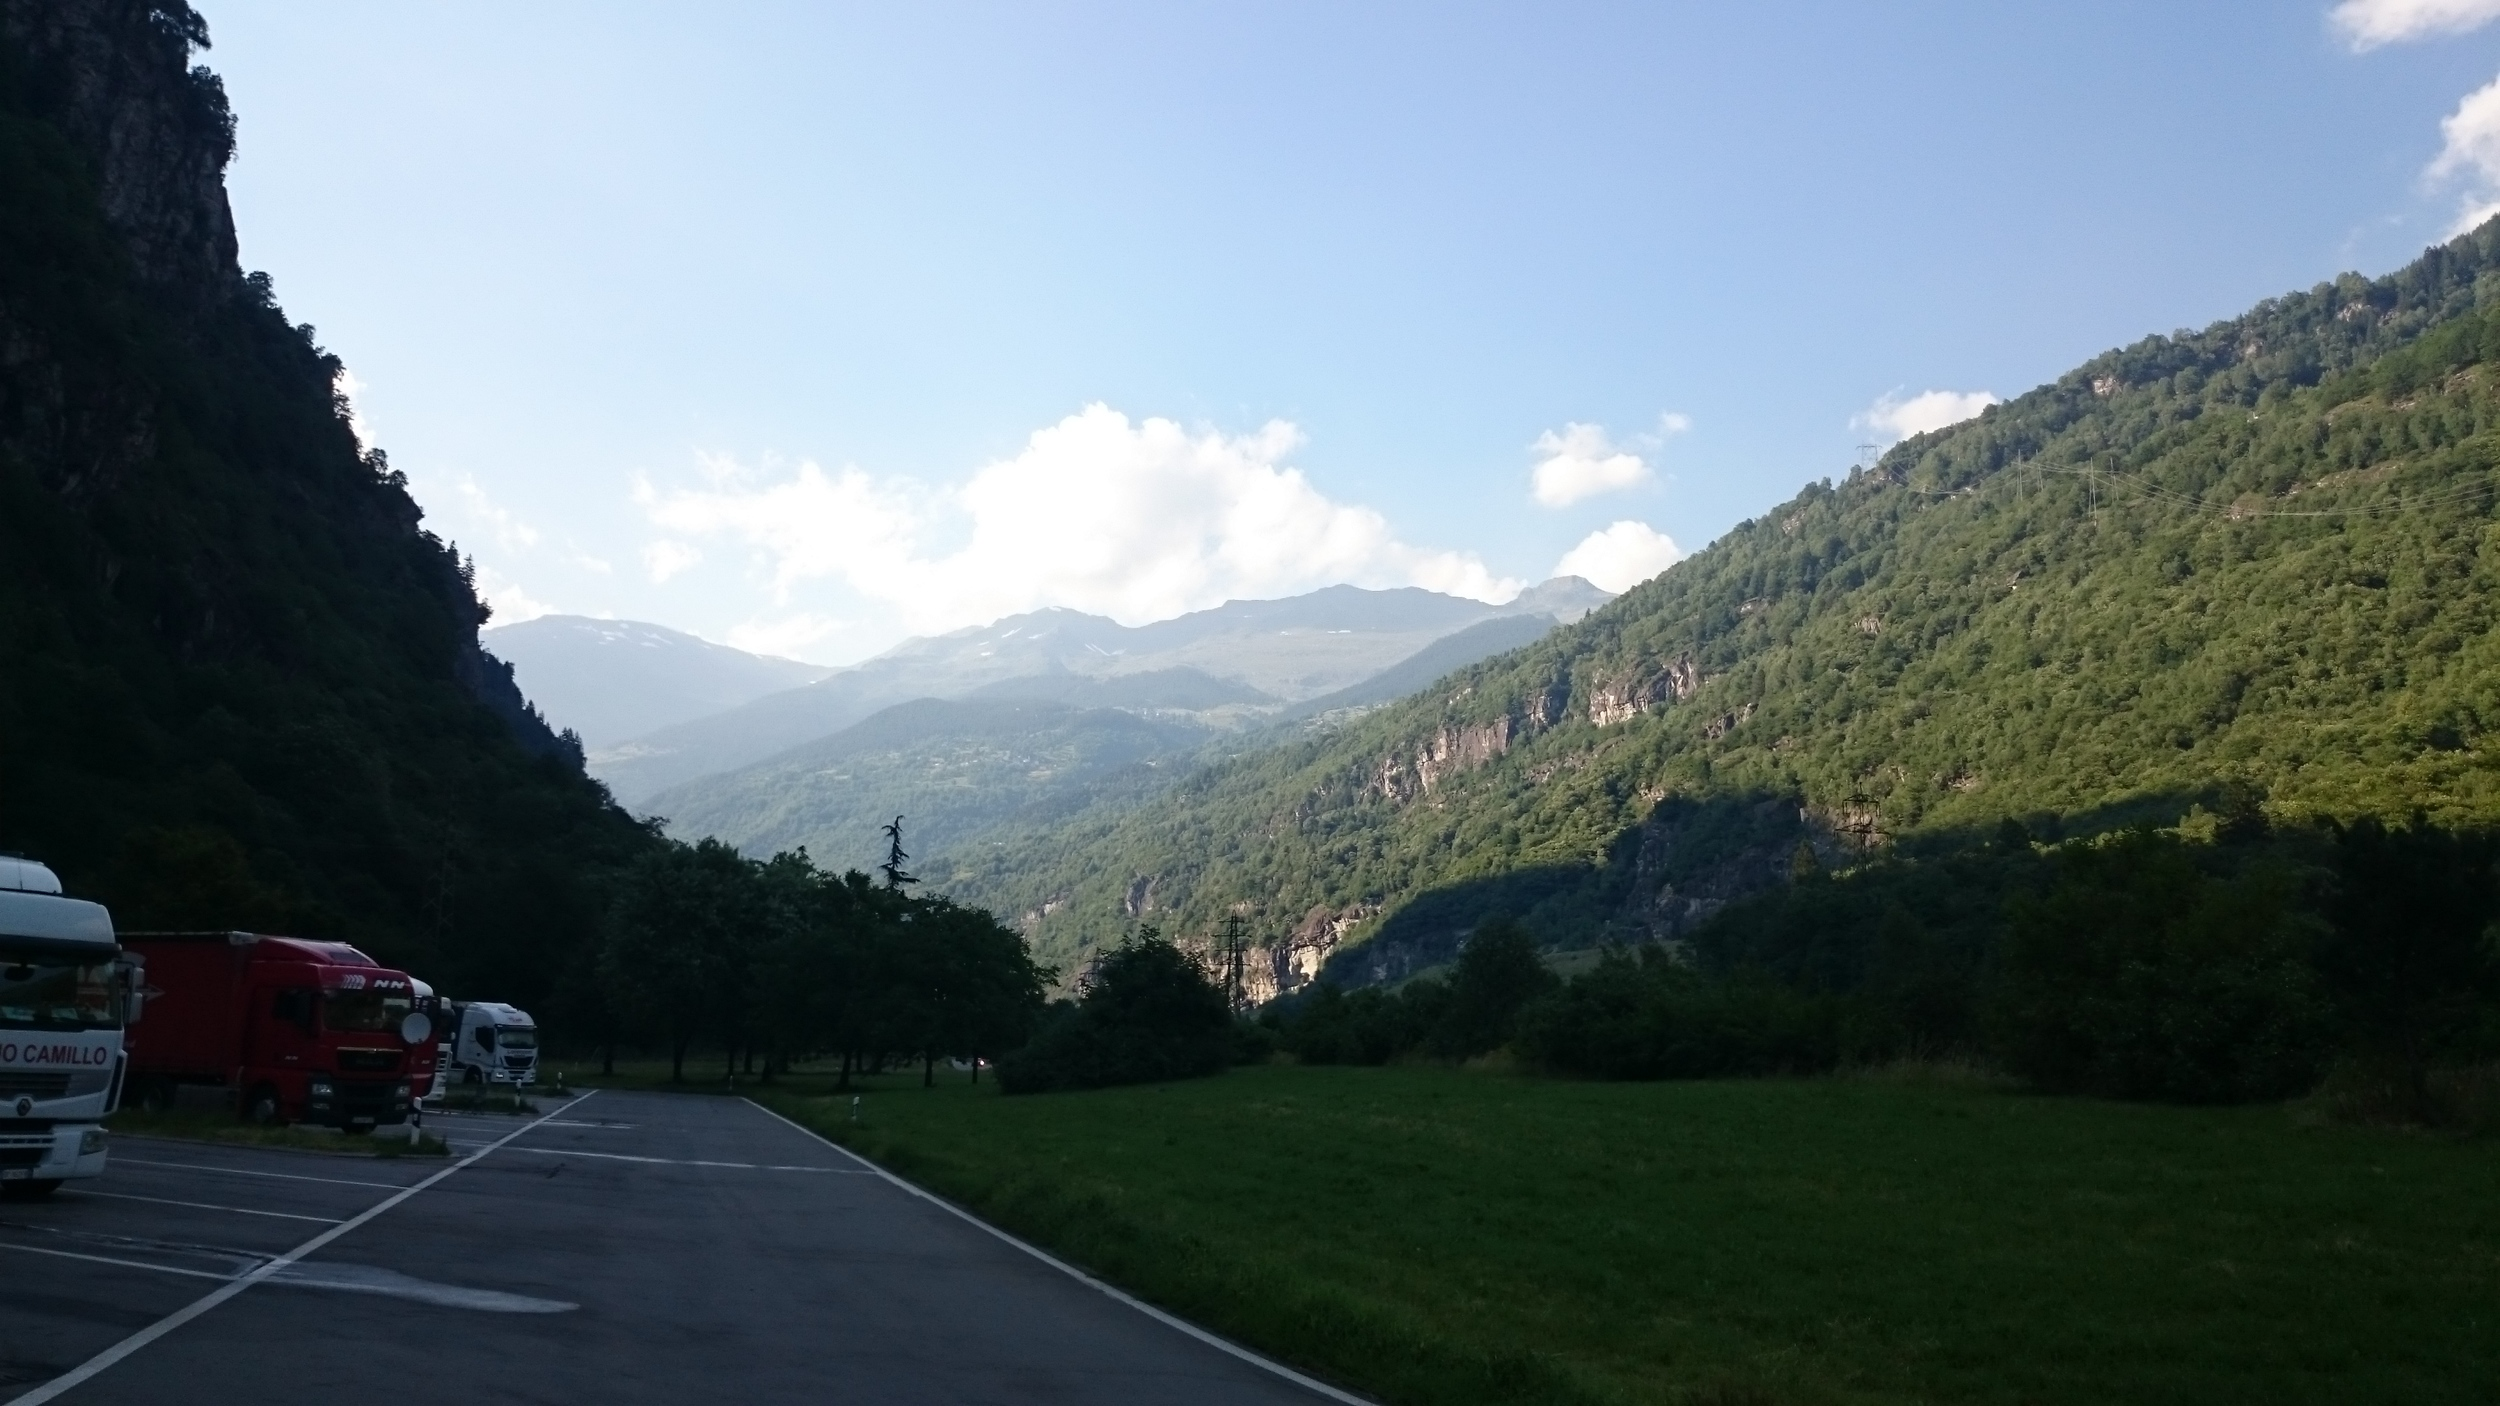 That afternoon we took a bus to milan! This picture was taken during the bus urinal break view of the lower parts of the alps